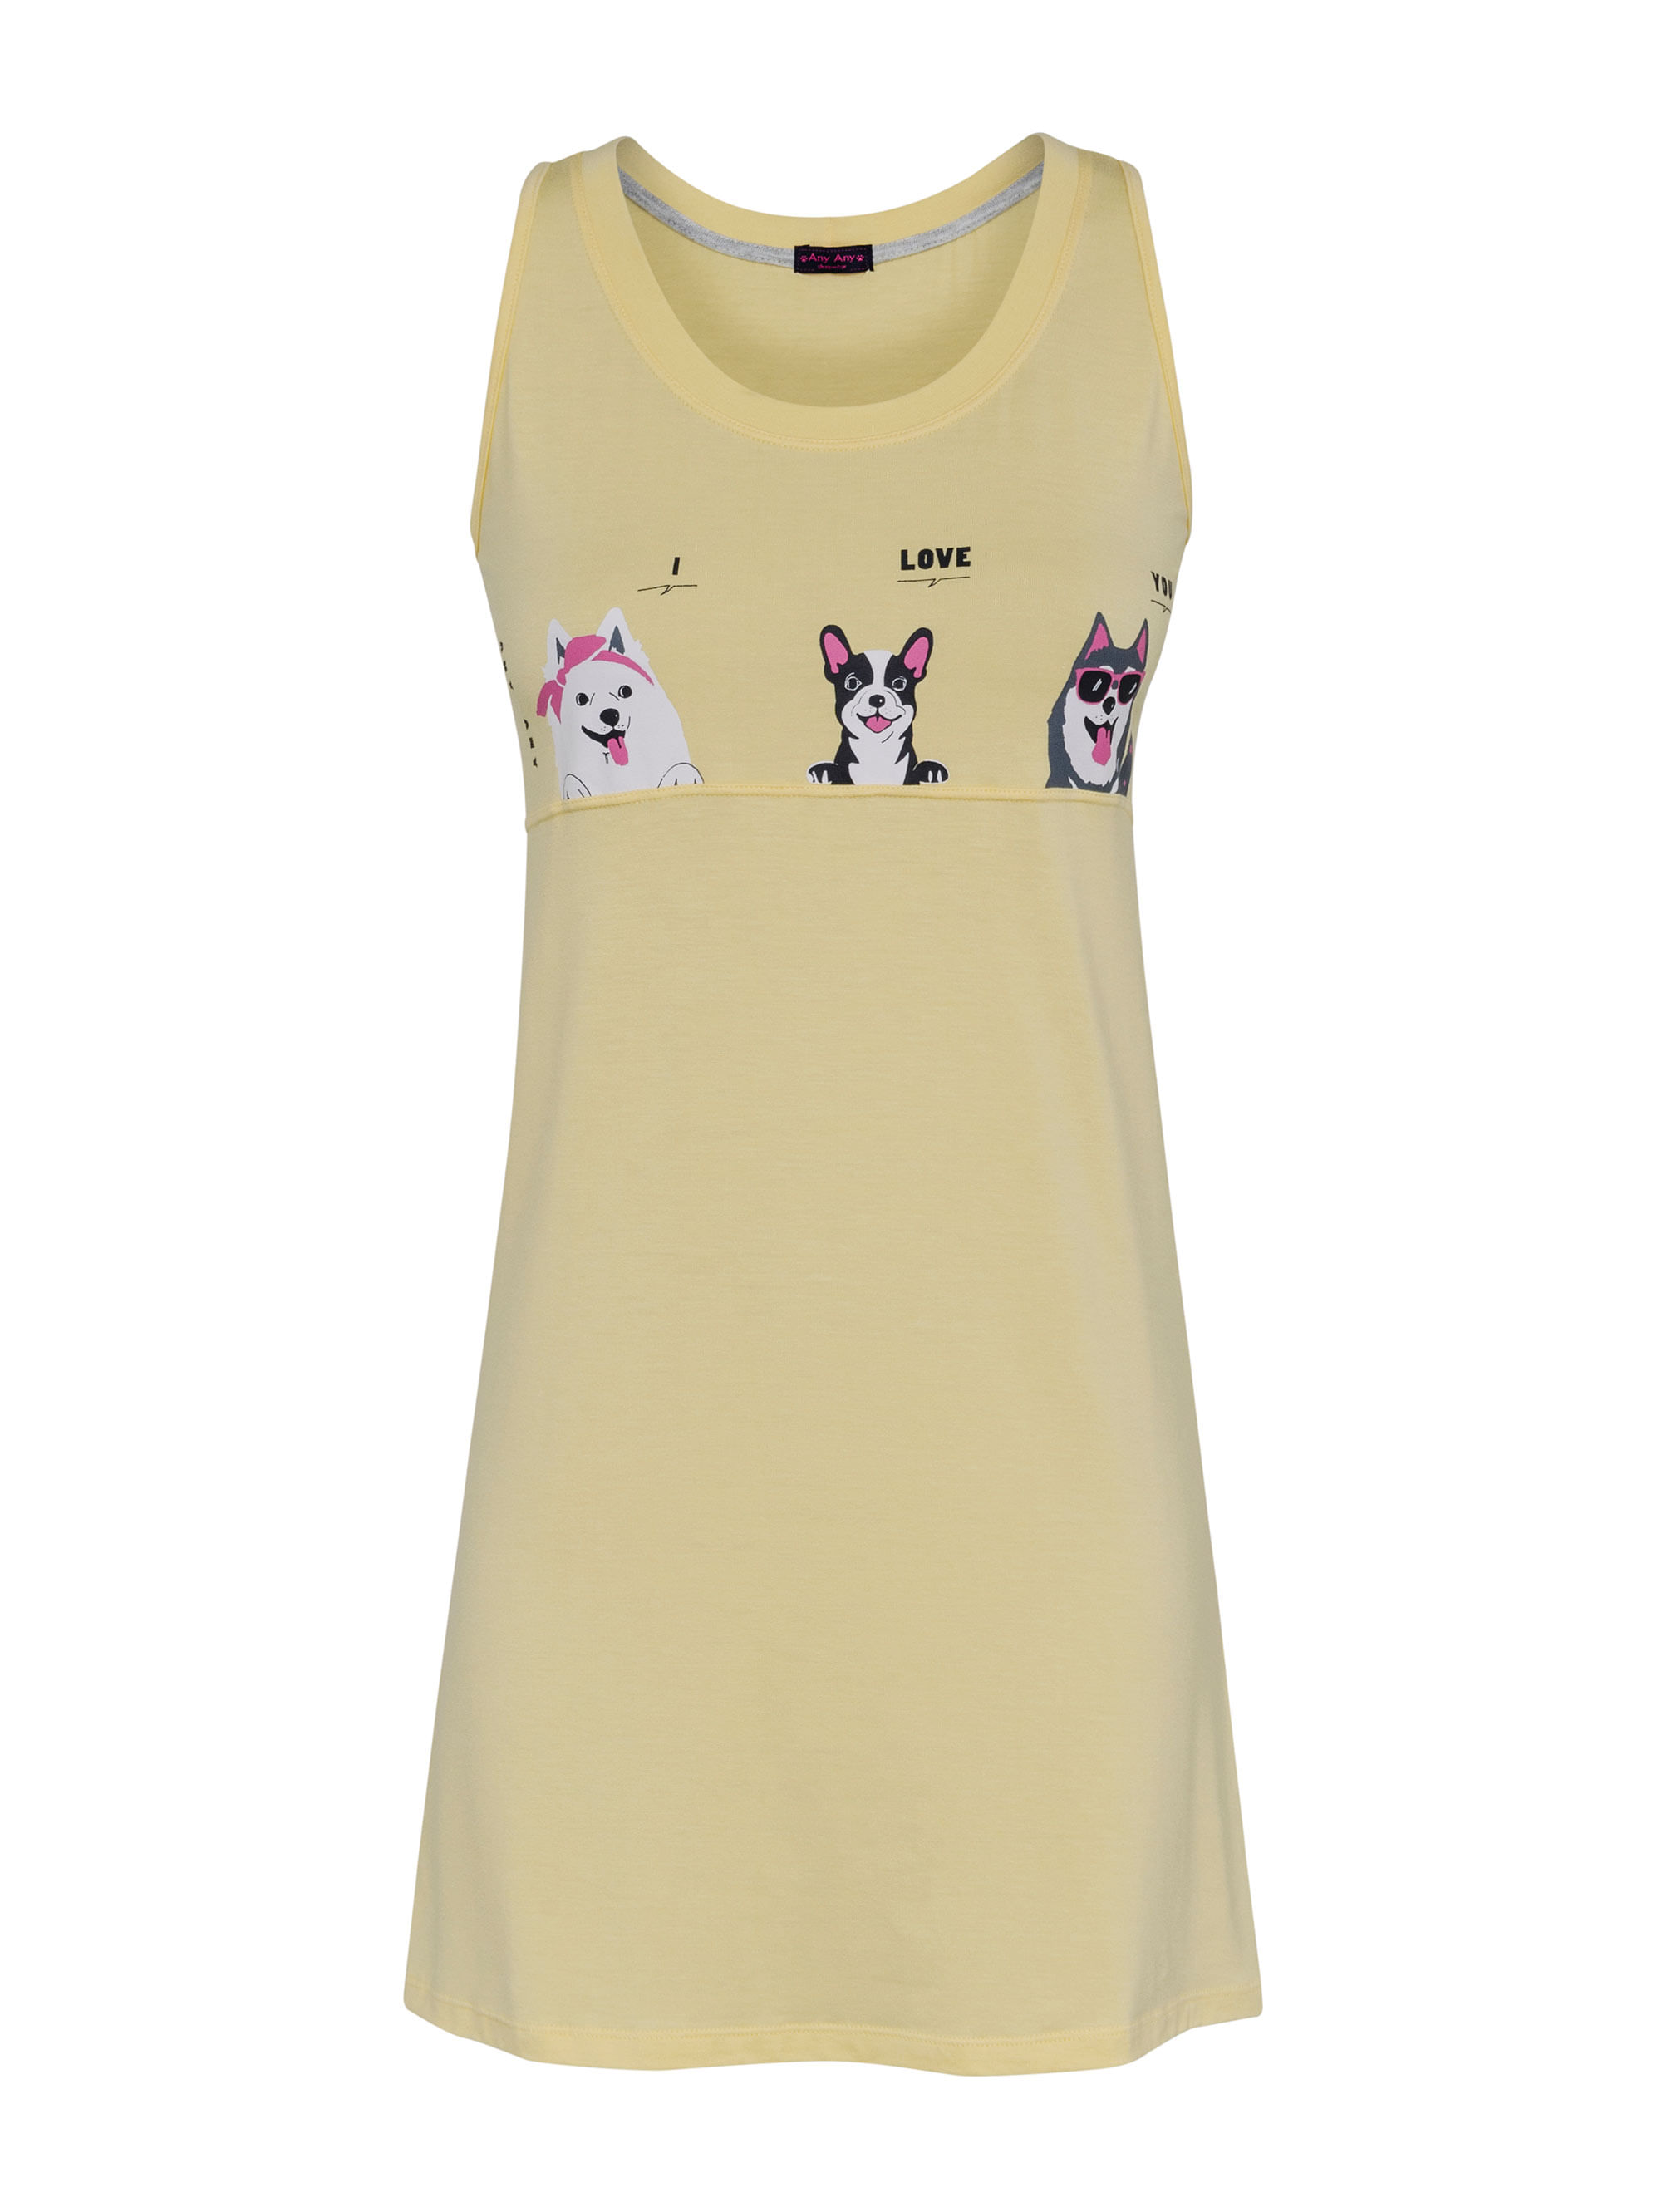 Camisola-Curta---RG---T--YELLOW-DOGS--01.03.1374